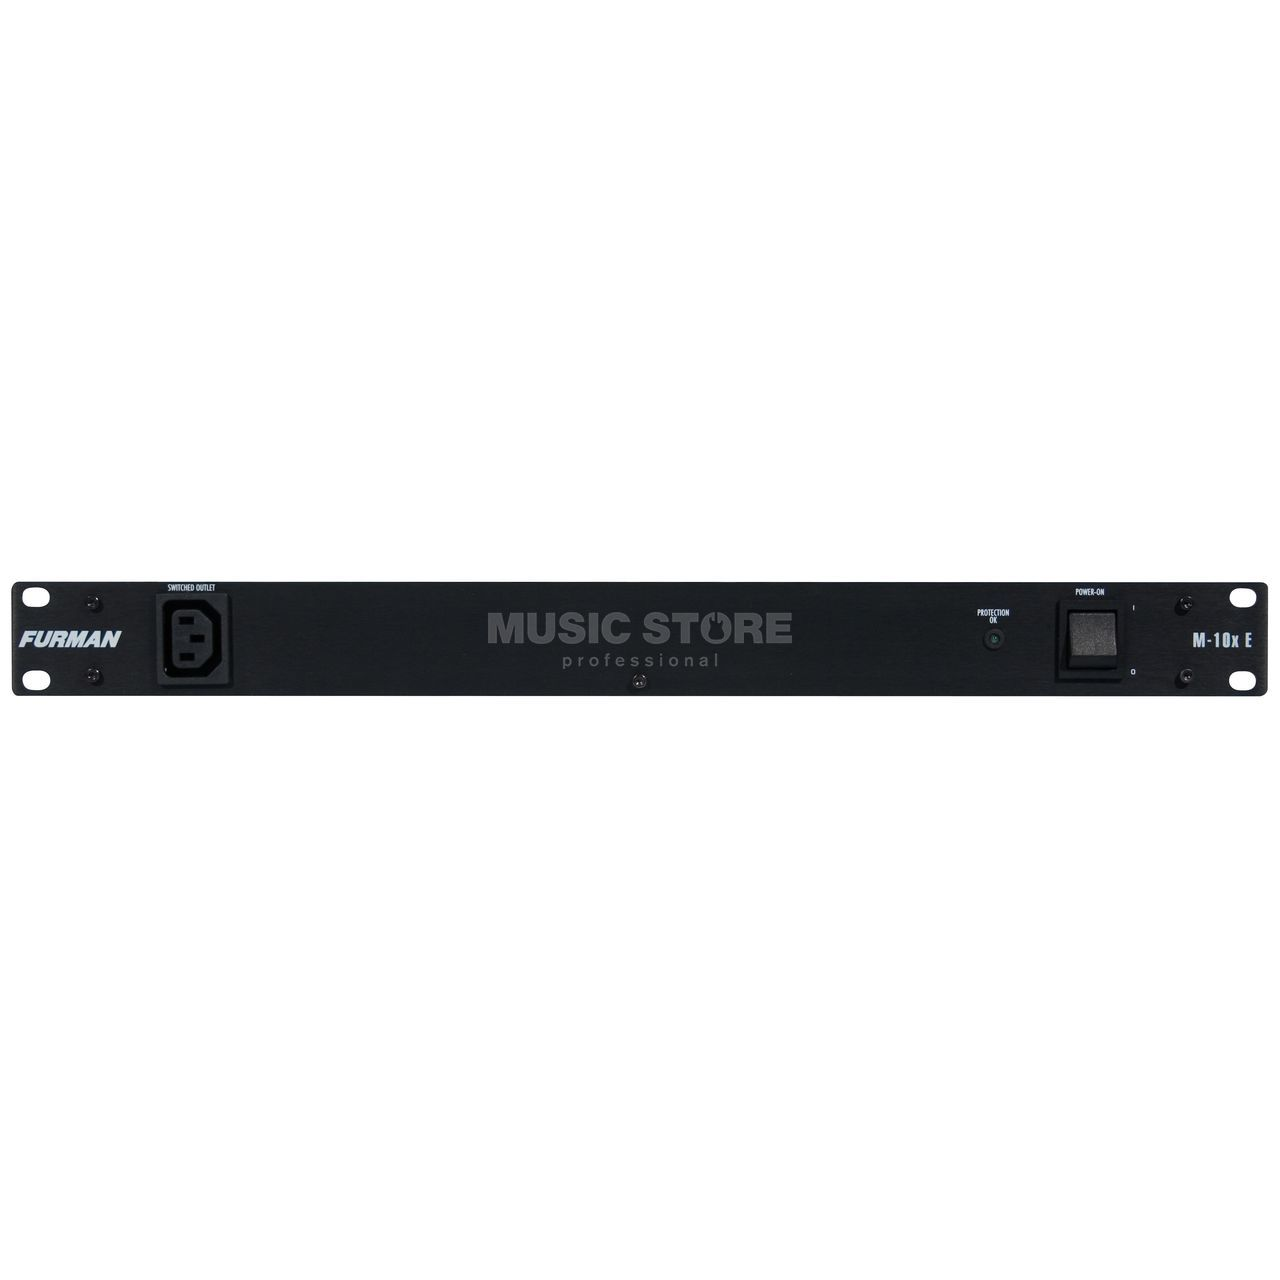 Furman M-10x E Power Conditioner | MUSIC STORE professional | en-DE